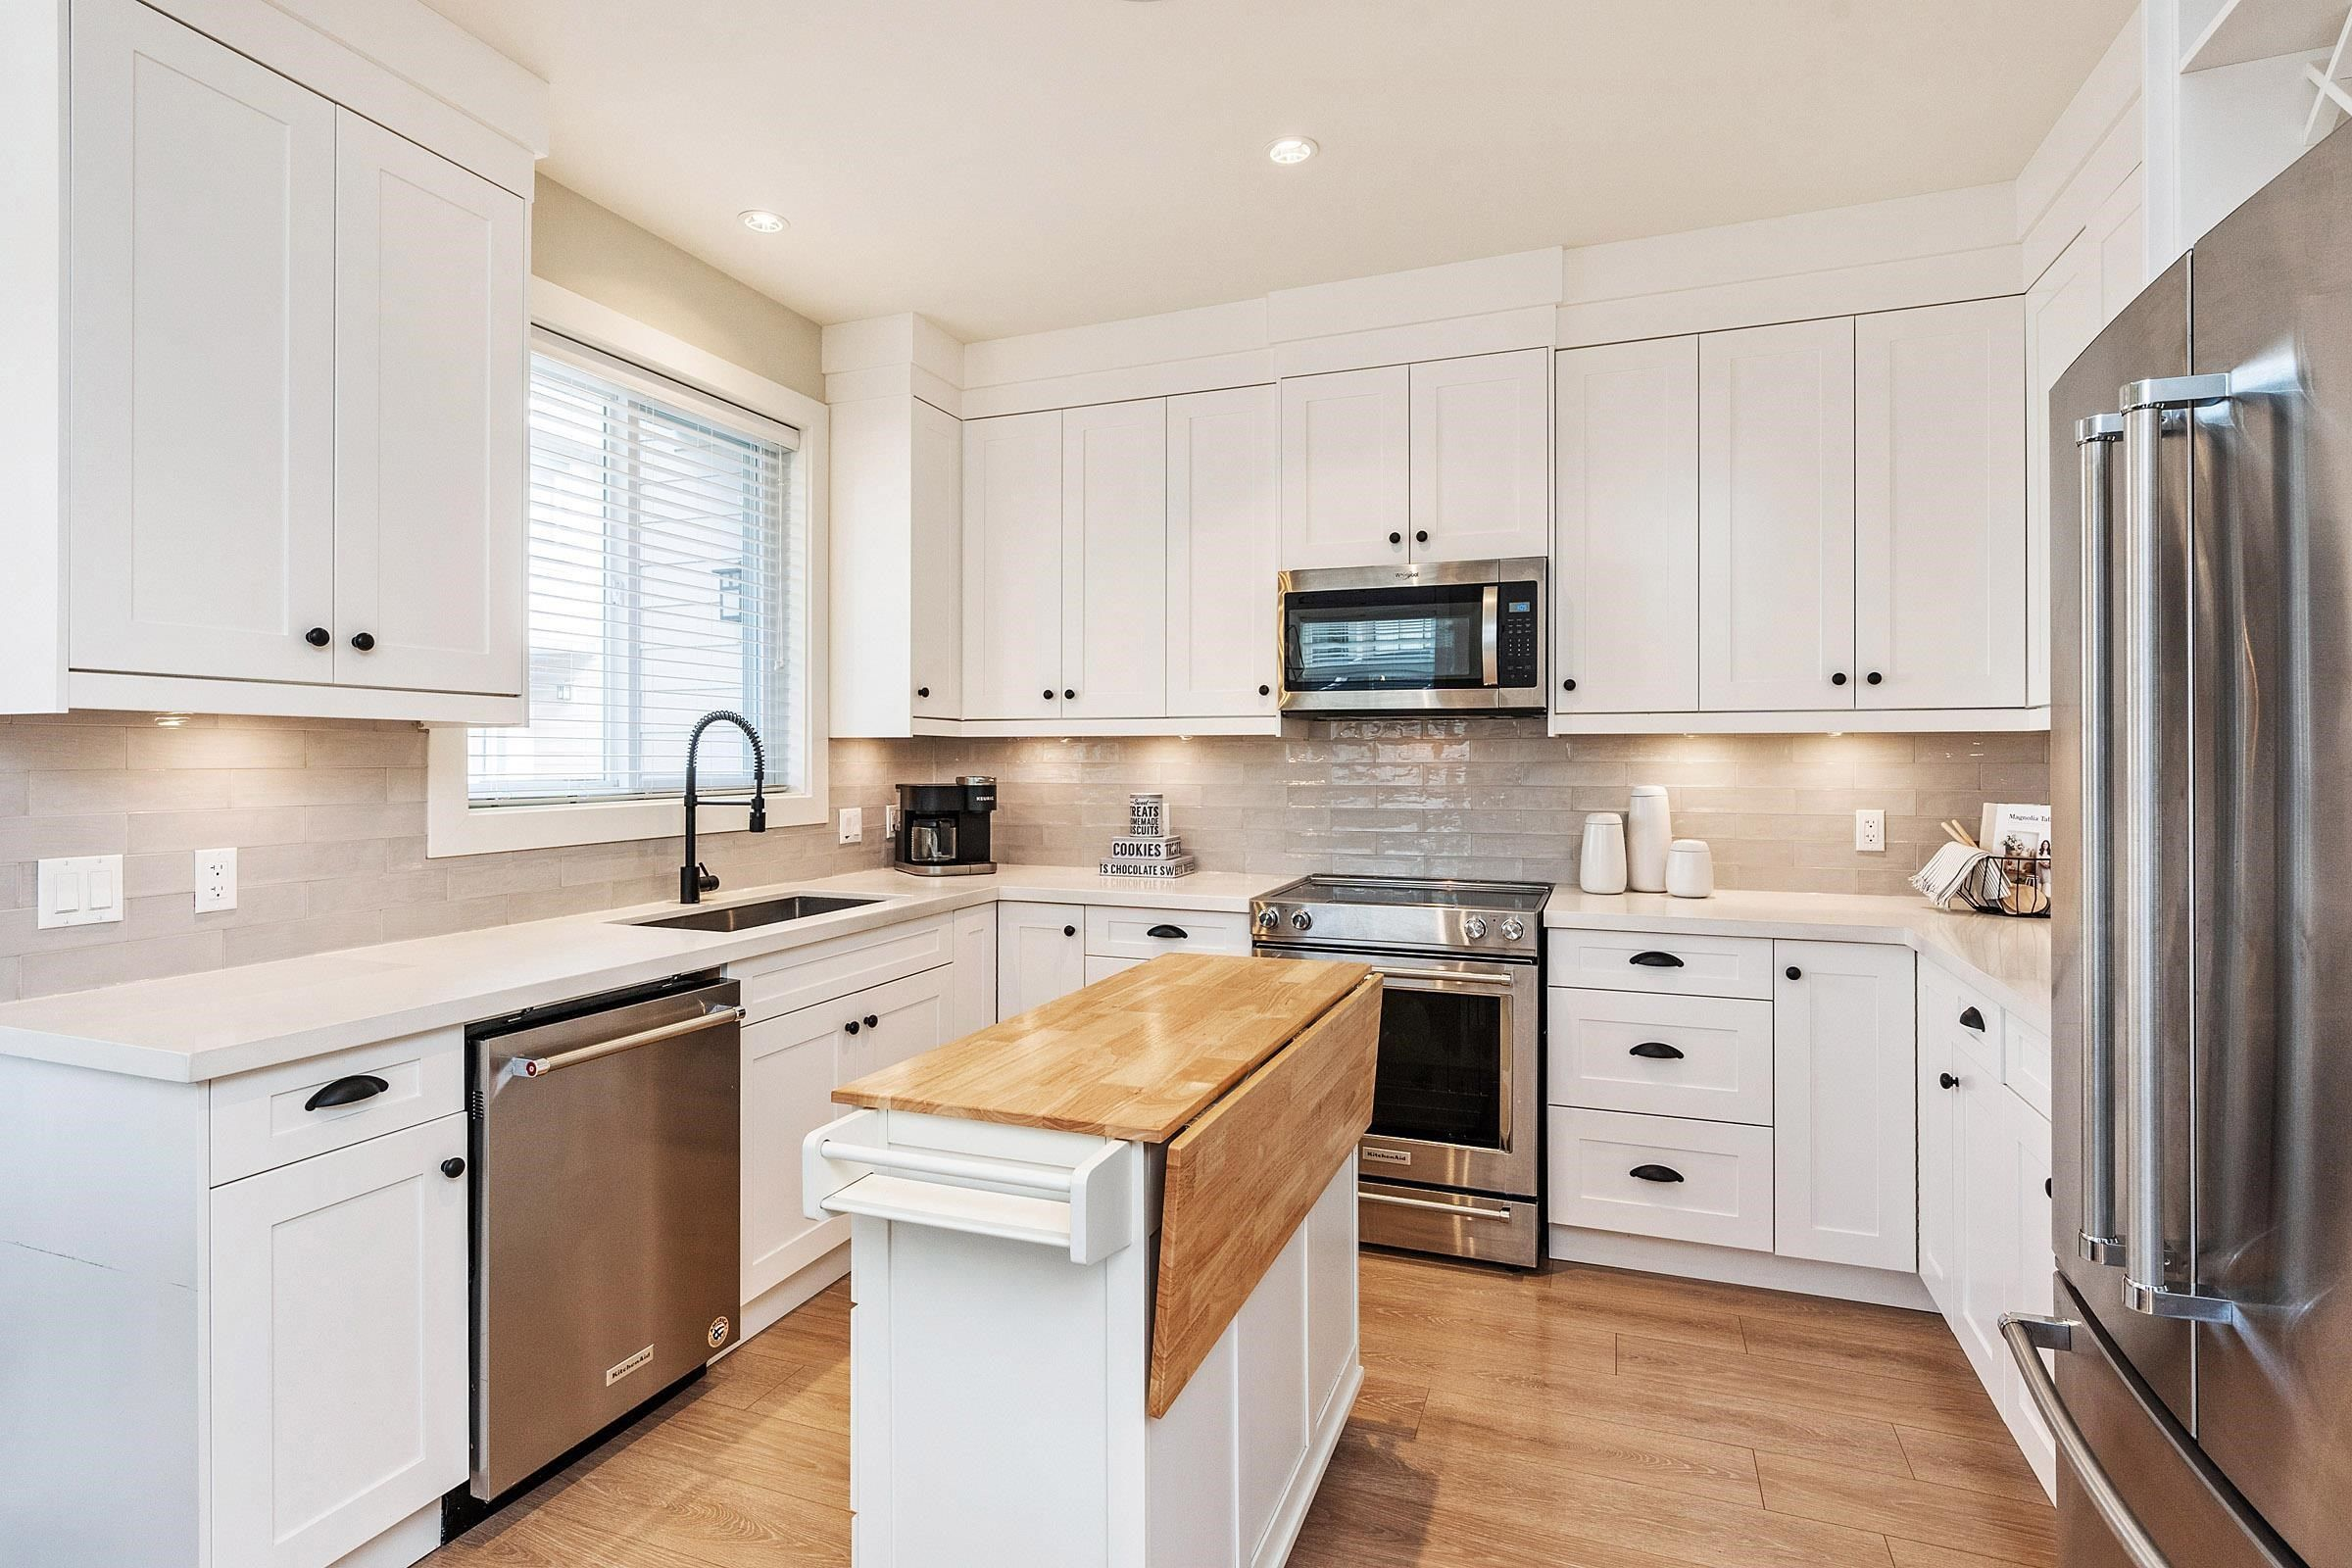 """Main Photo: 9 5945 177B Street in Surrey: Cloverdale BC Townhouse for sale in """"THE CLOVER"""" (Cloverdale)  : MLS®# R2624605"""